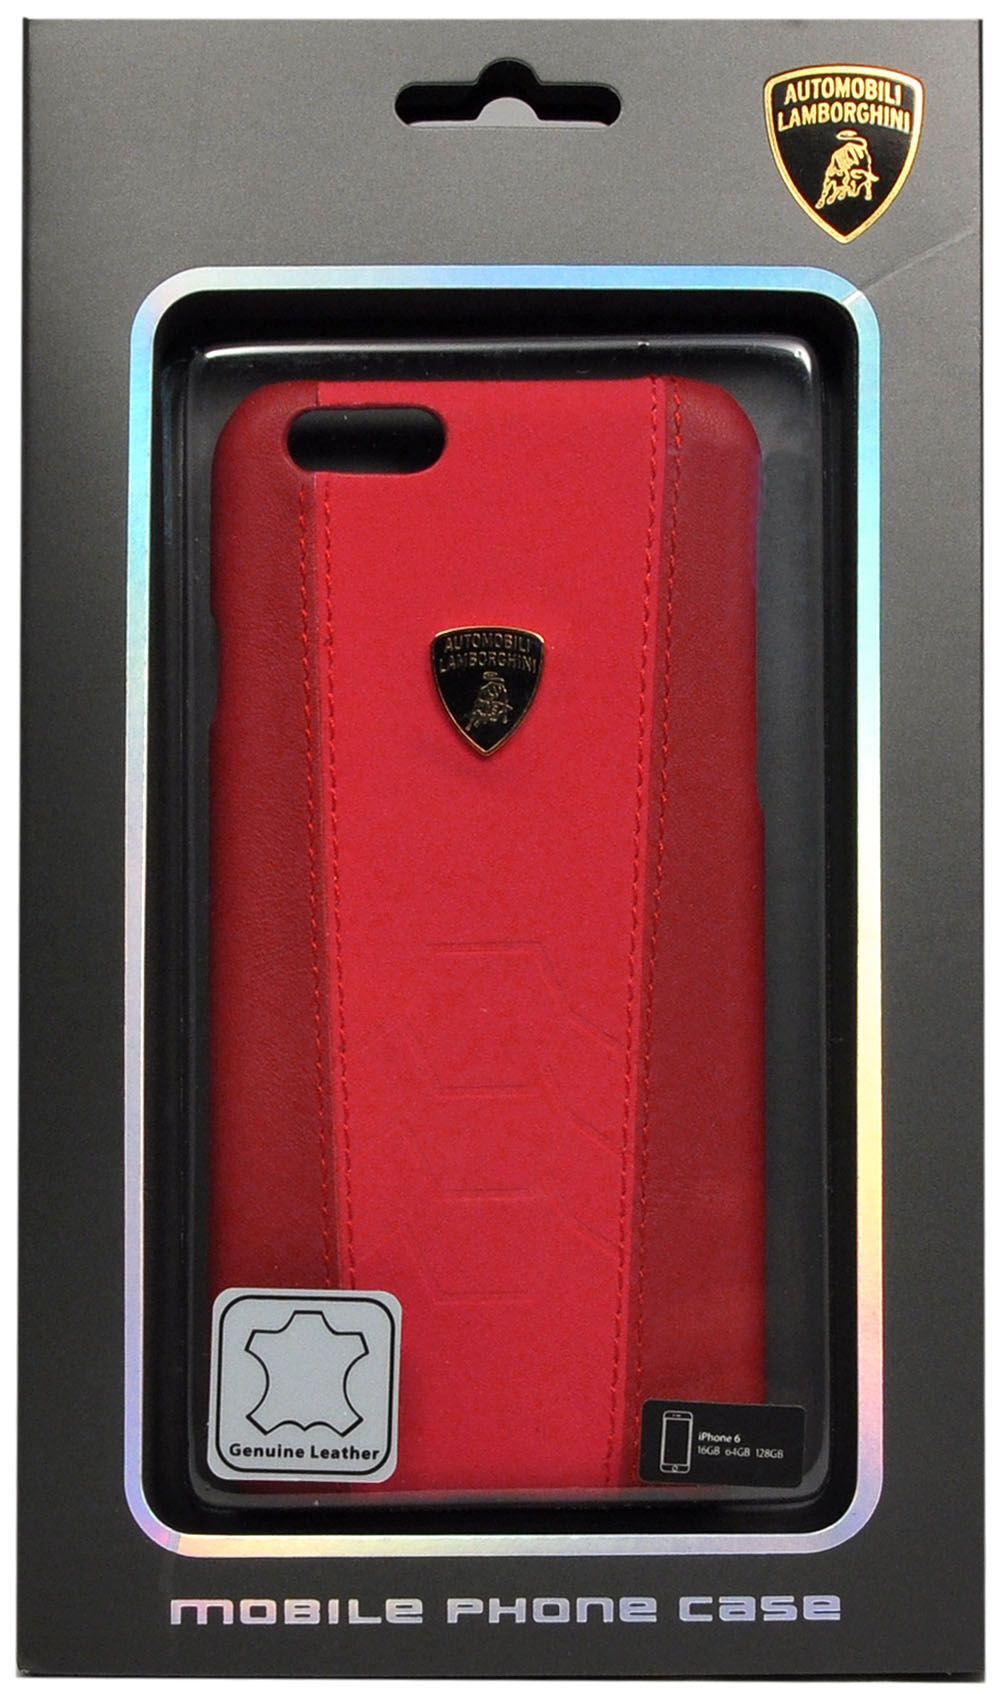 Lamborghini  iPhone 6 Murcielago Hard - Red, картинка 3